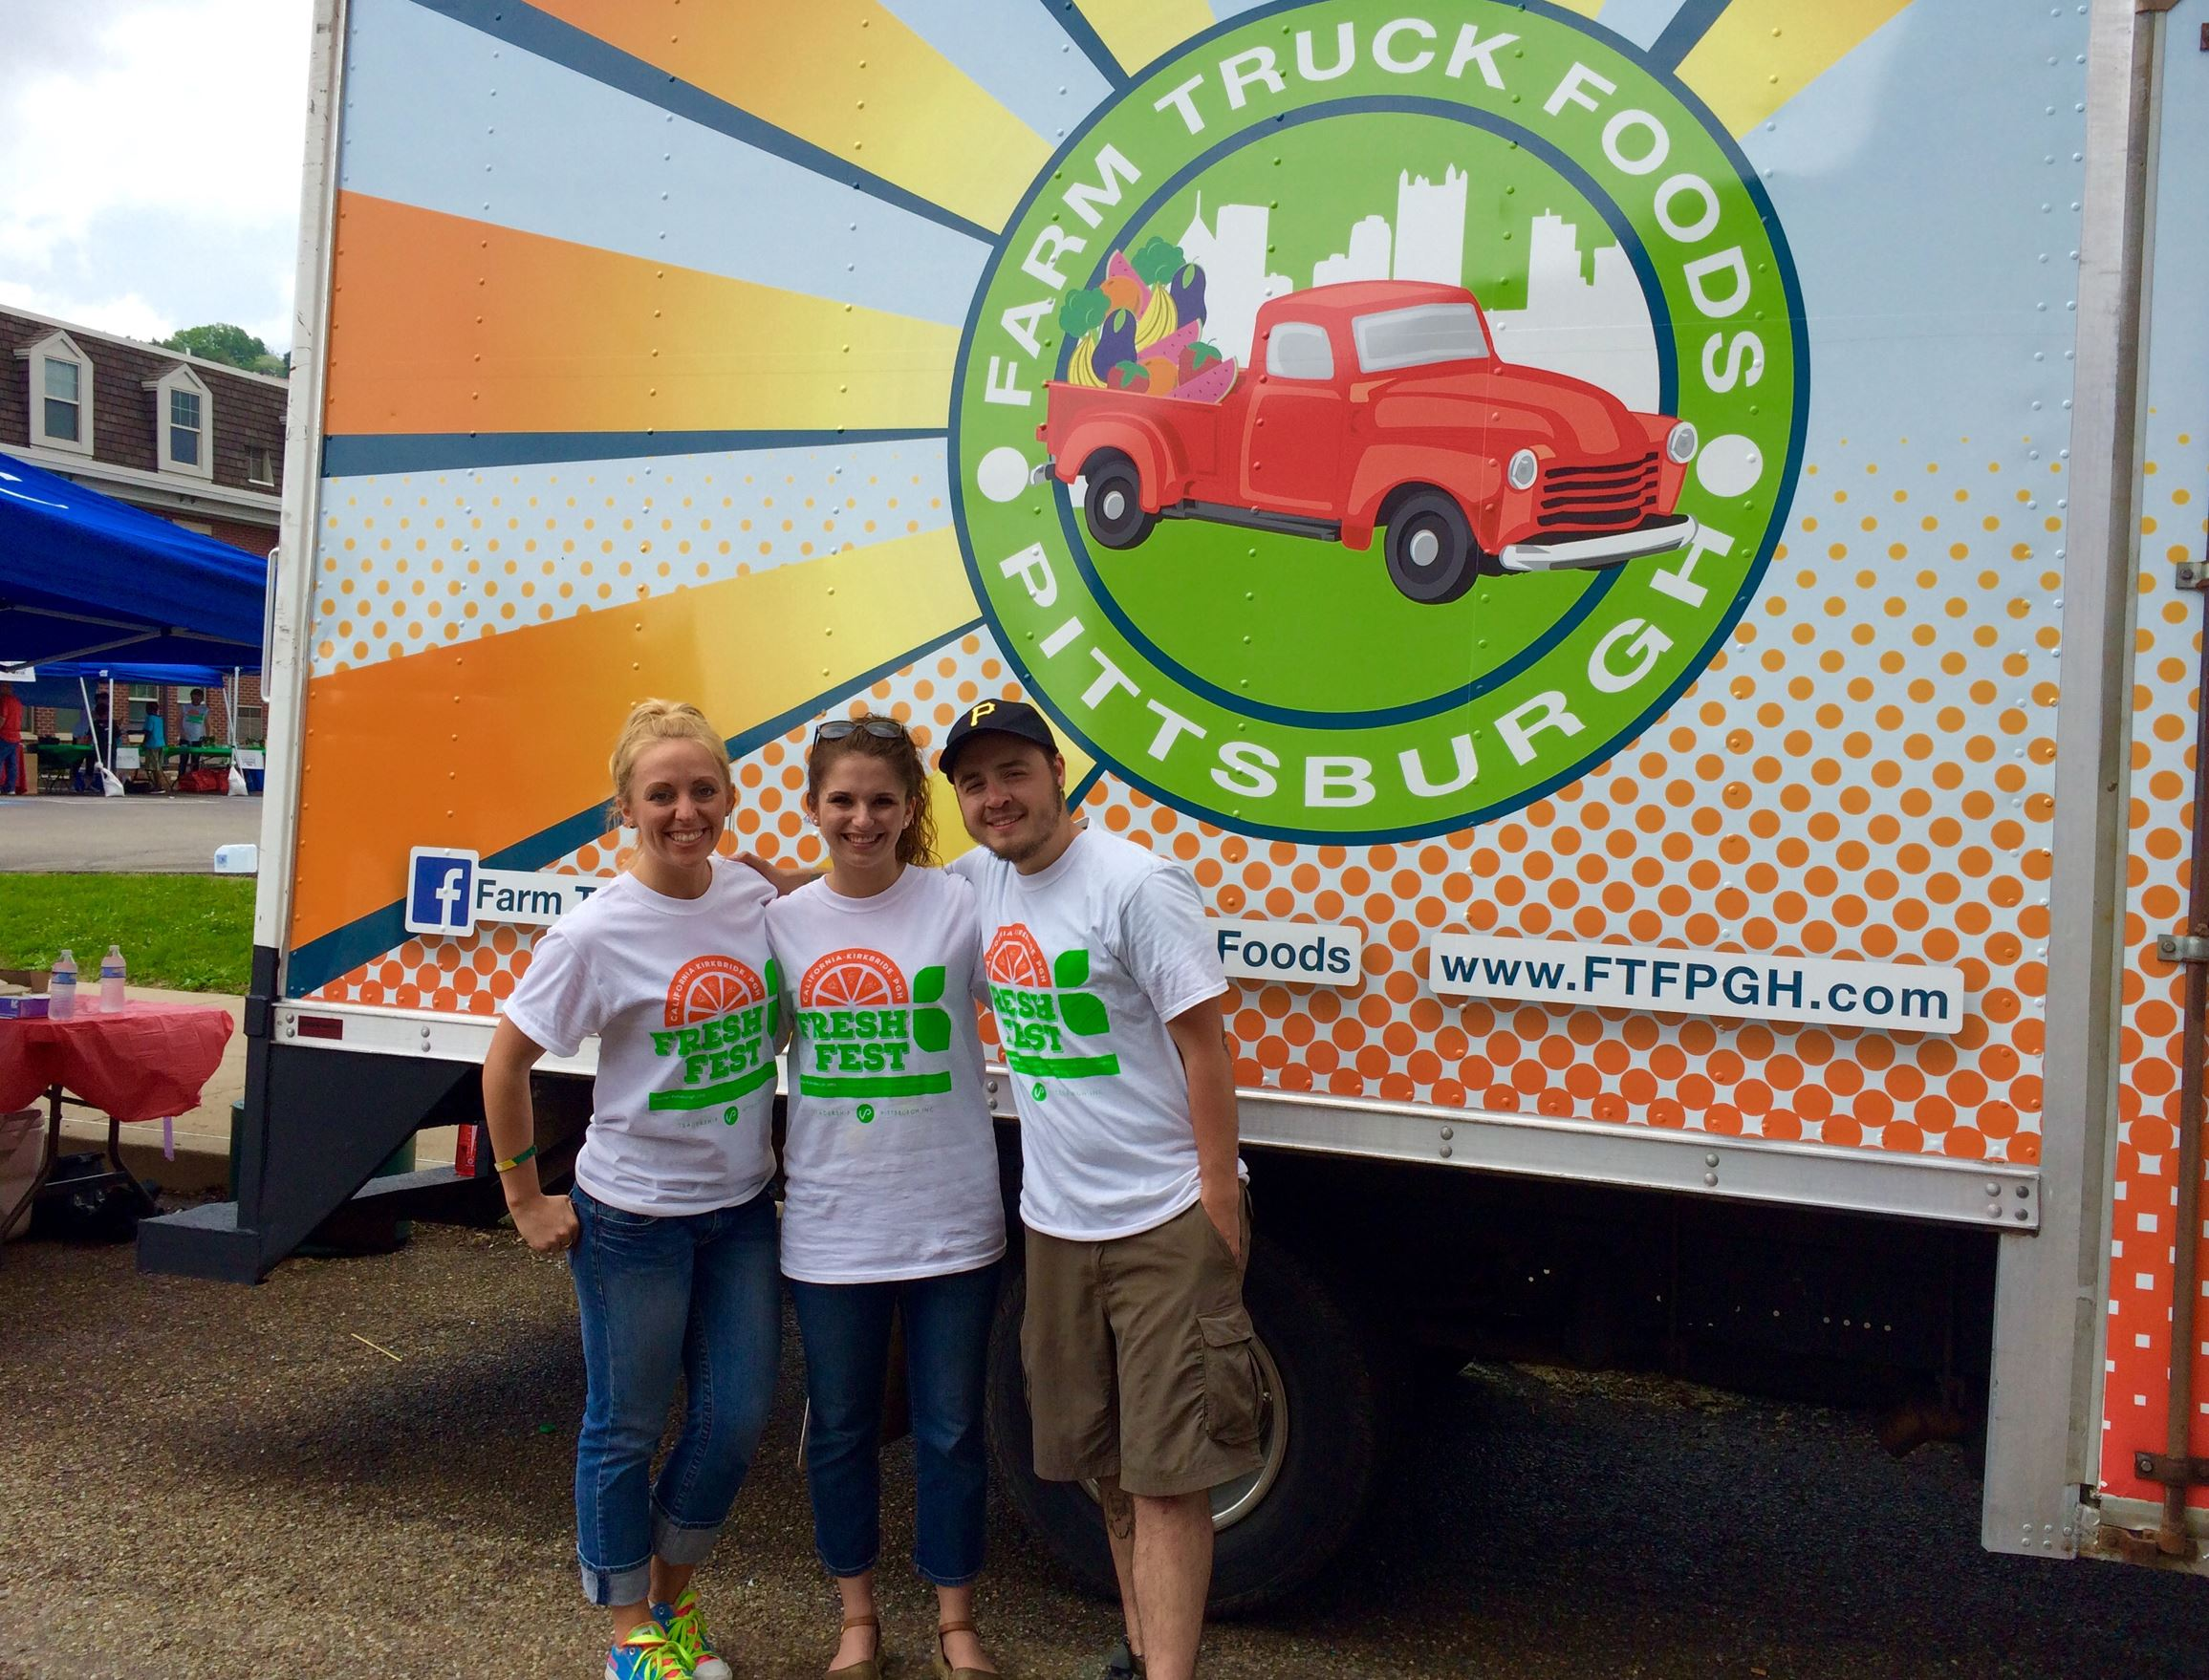 FarmTruck1 Farm Truck Food principals, from left, Michelle Lagree, Meredith Neel-Jurinko and Landon DePaulo.